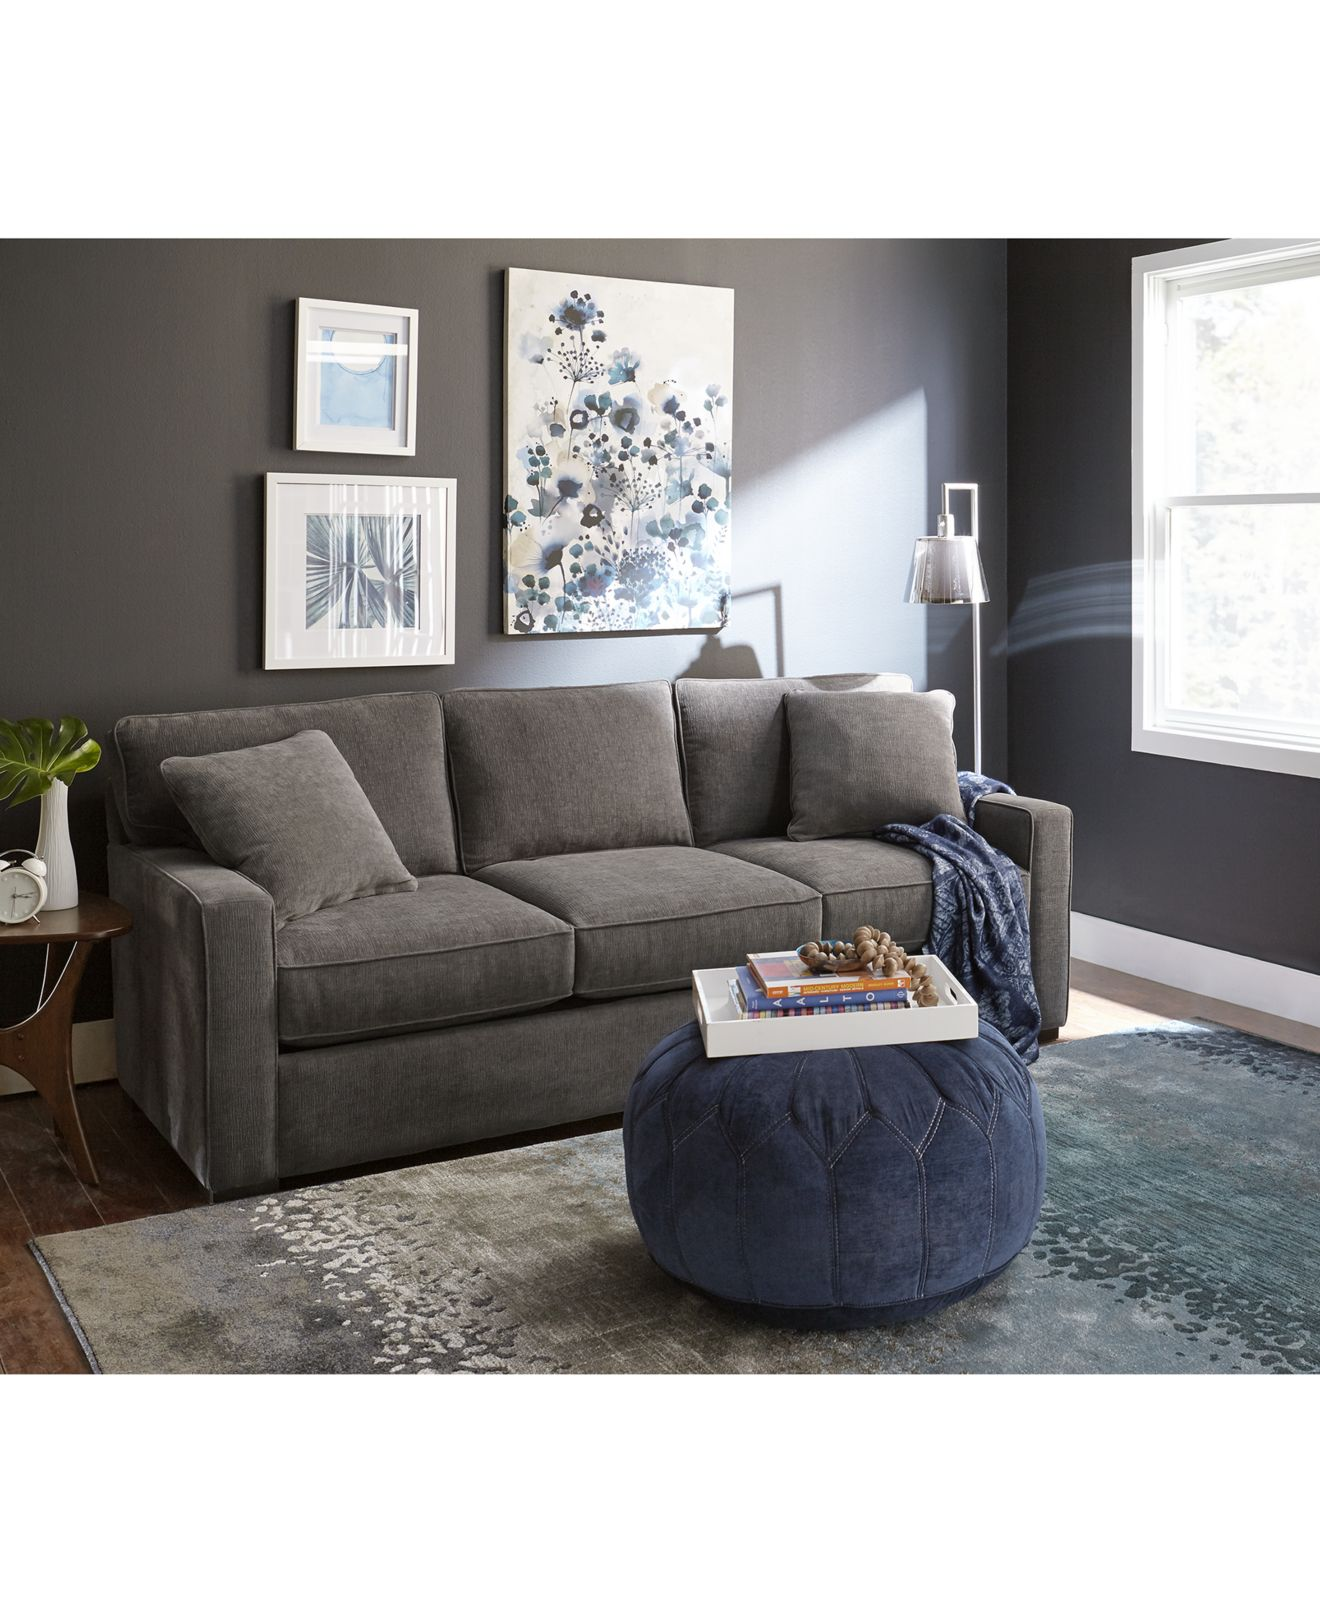 Radley sofa living room furniture collection